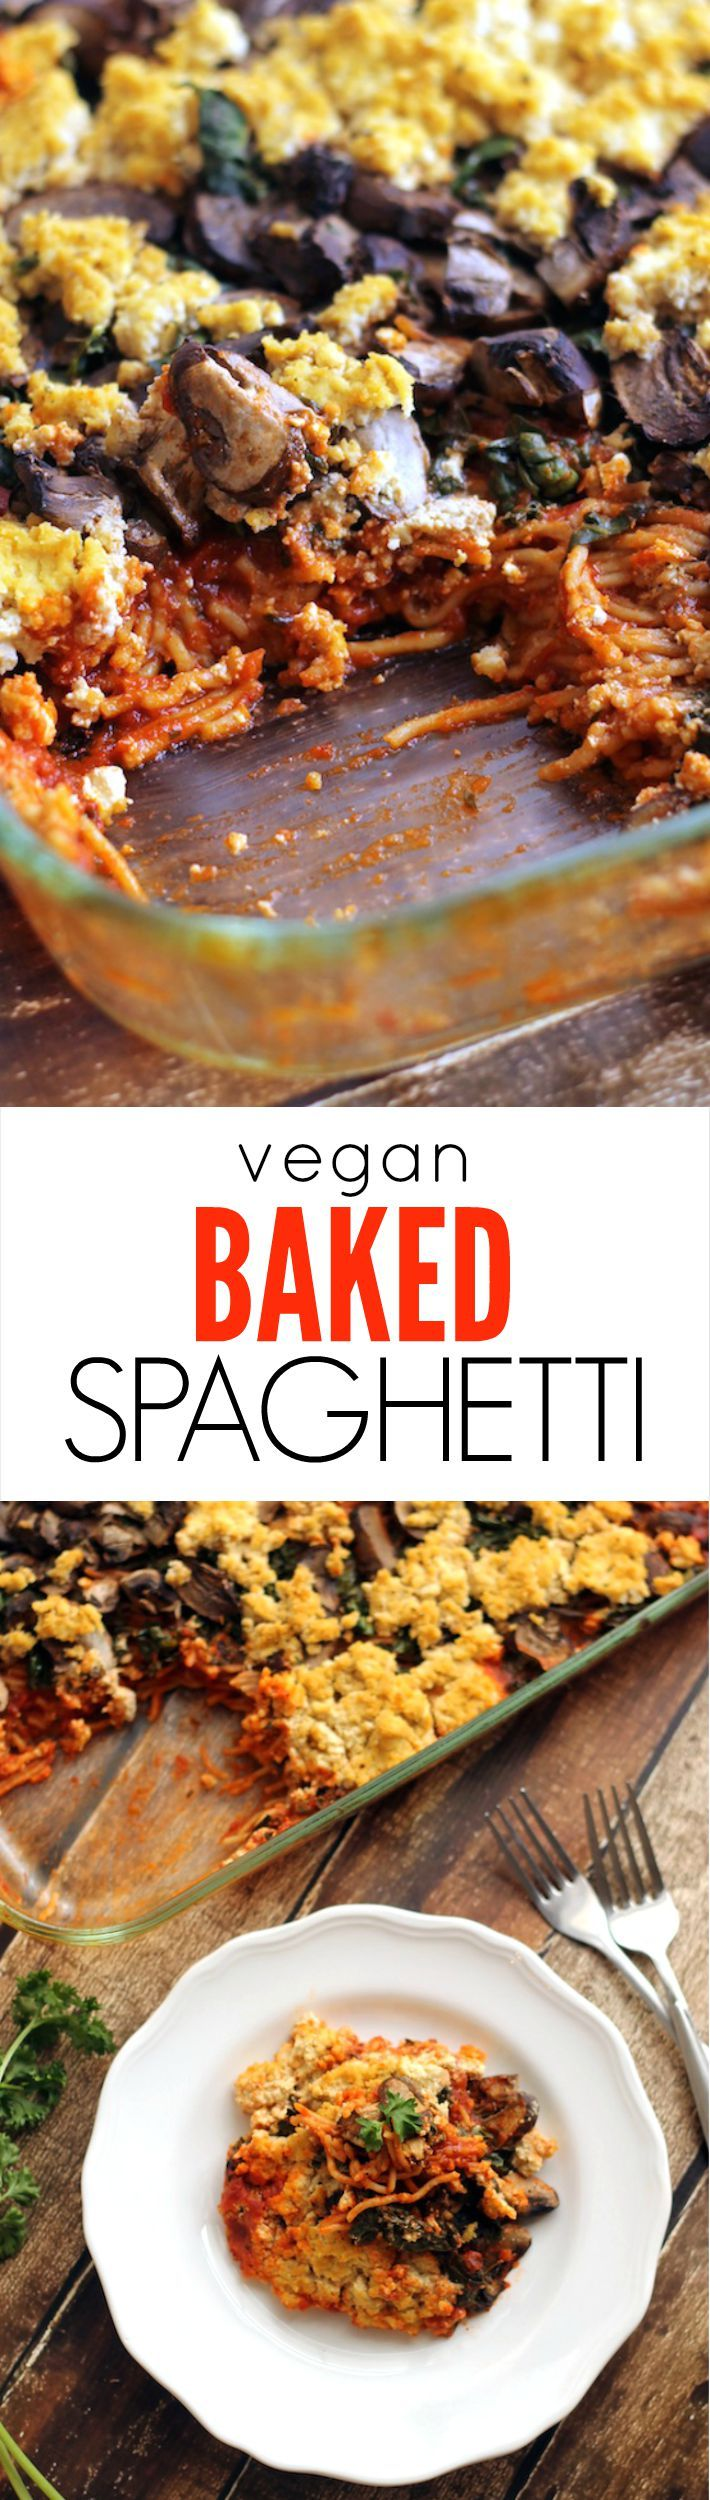 Vegan Baked Spaghetti with Kale, Mushrooms and Tofu Ricotta---a super easy, comforting, kid-friendly meatless meal the whole family will adore!